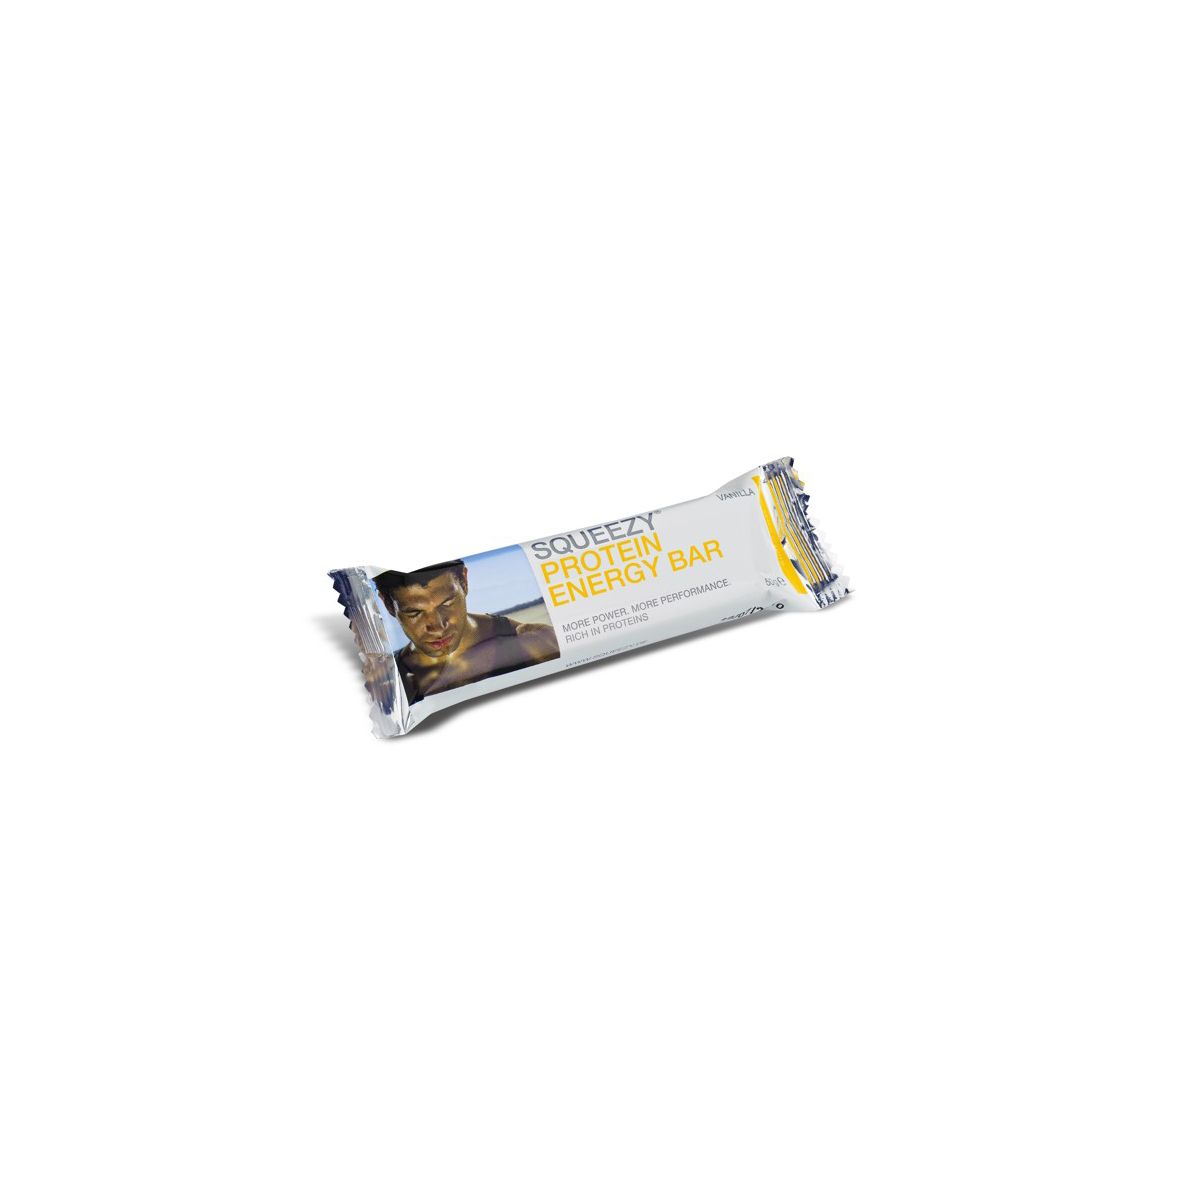 Protein Energy Bar protein-carbohydrate bar